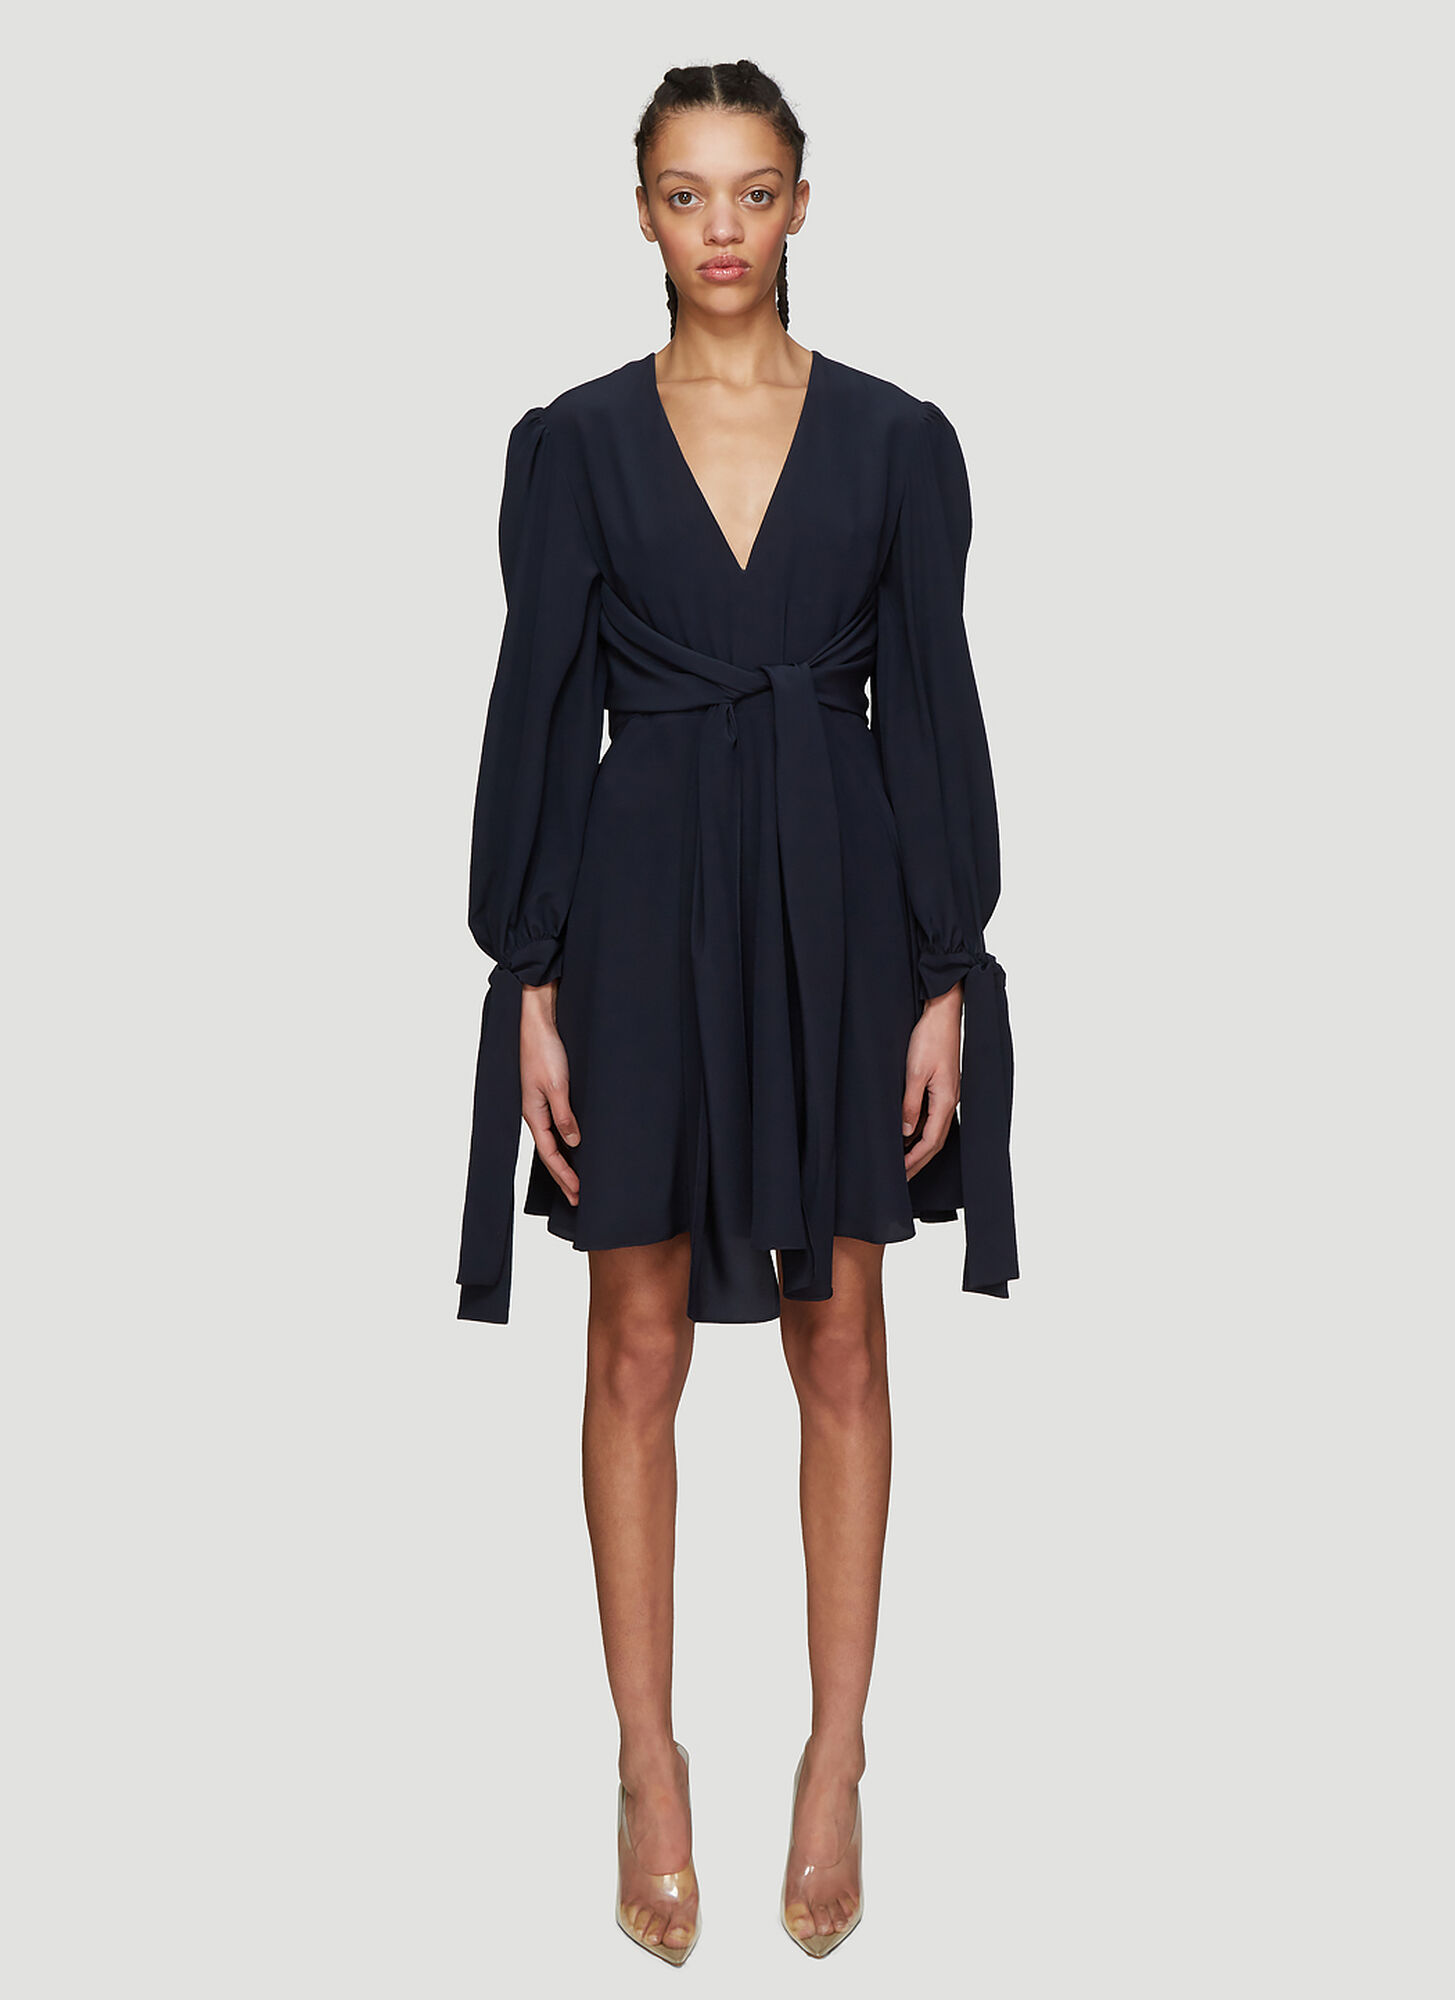 Stella McCartney Bishop Sleeve Dress in Navy